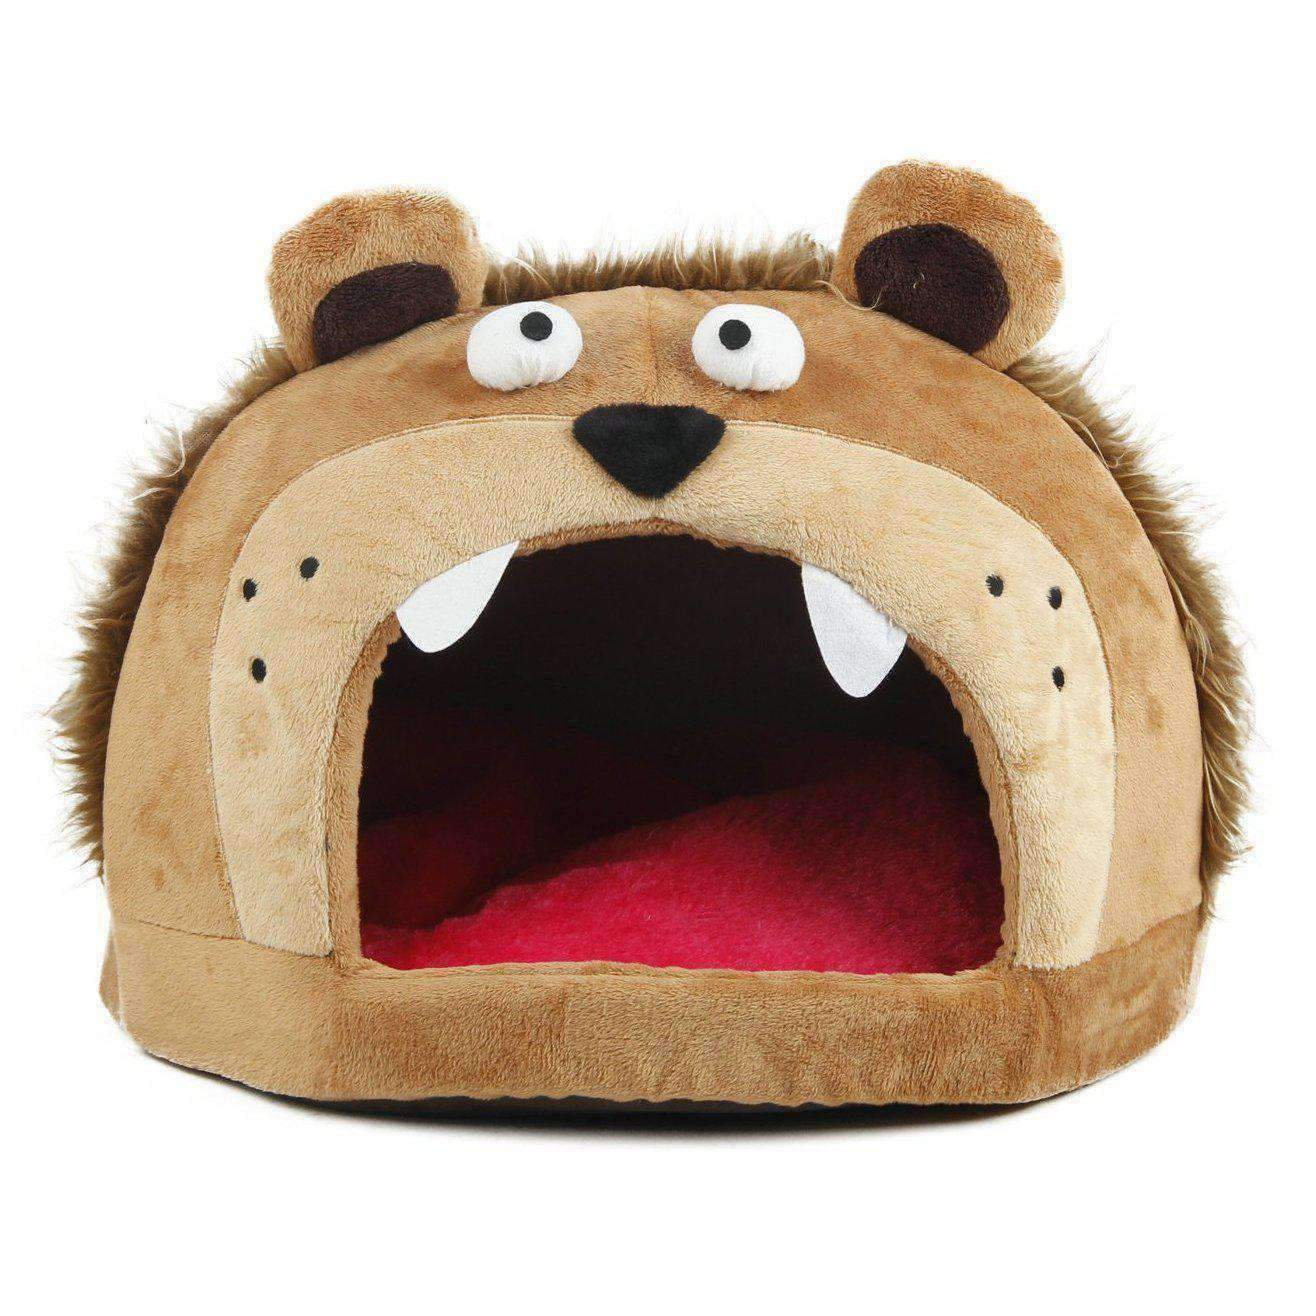 Roar Bear Snuggle Plush Polar Fleece Pet Bed-Pet Life-DirtyFurClothing